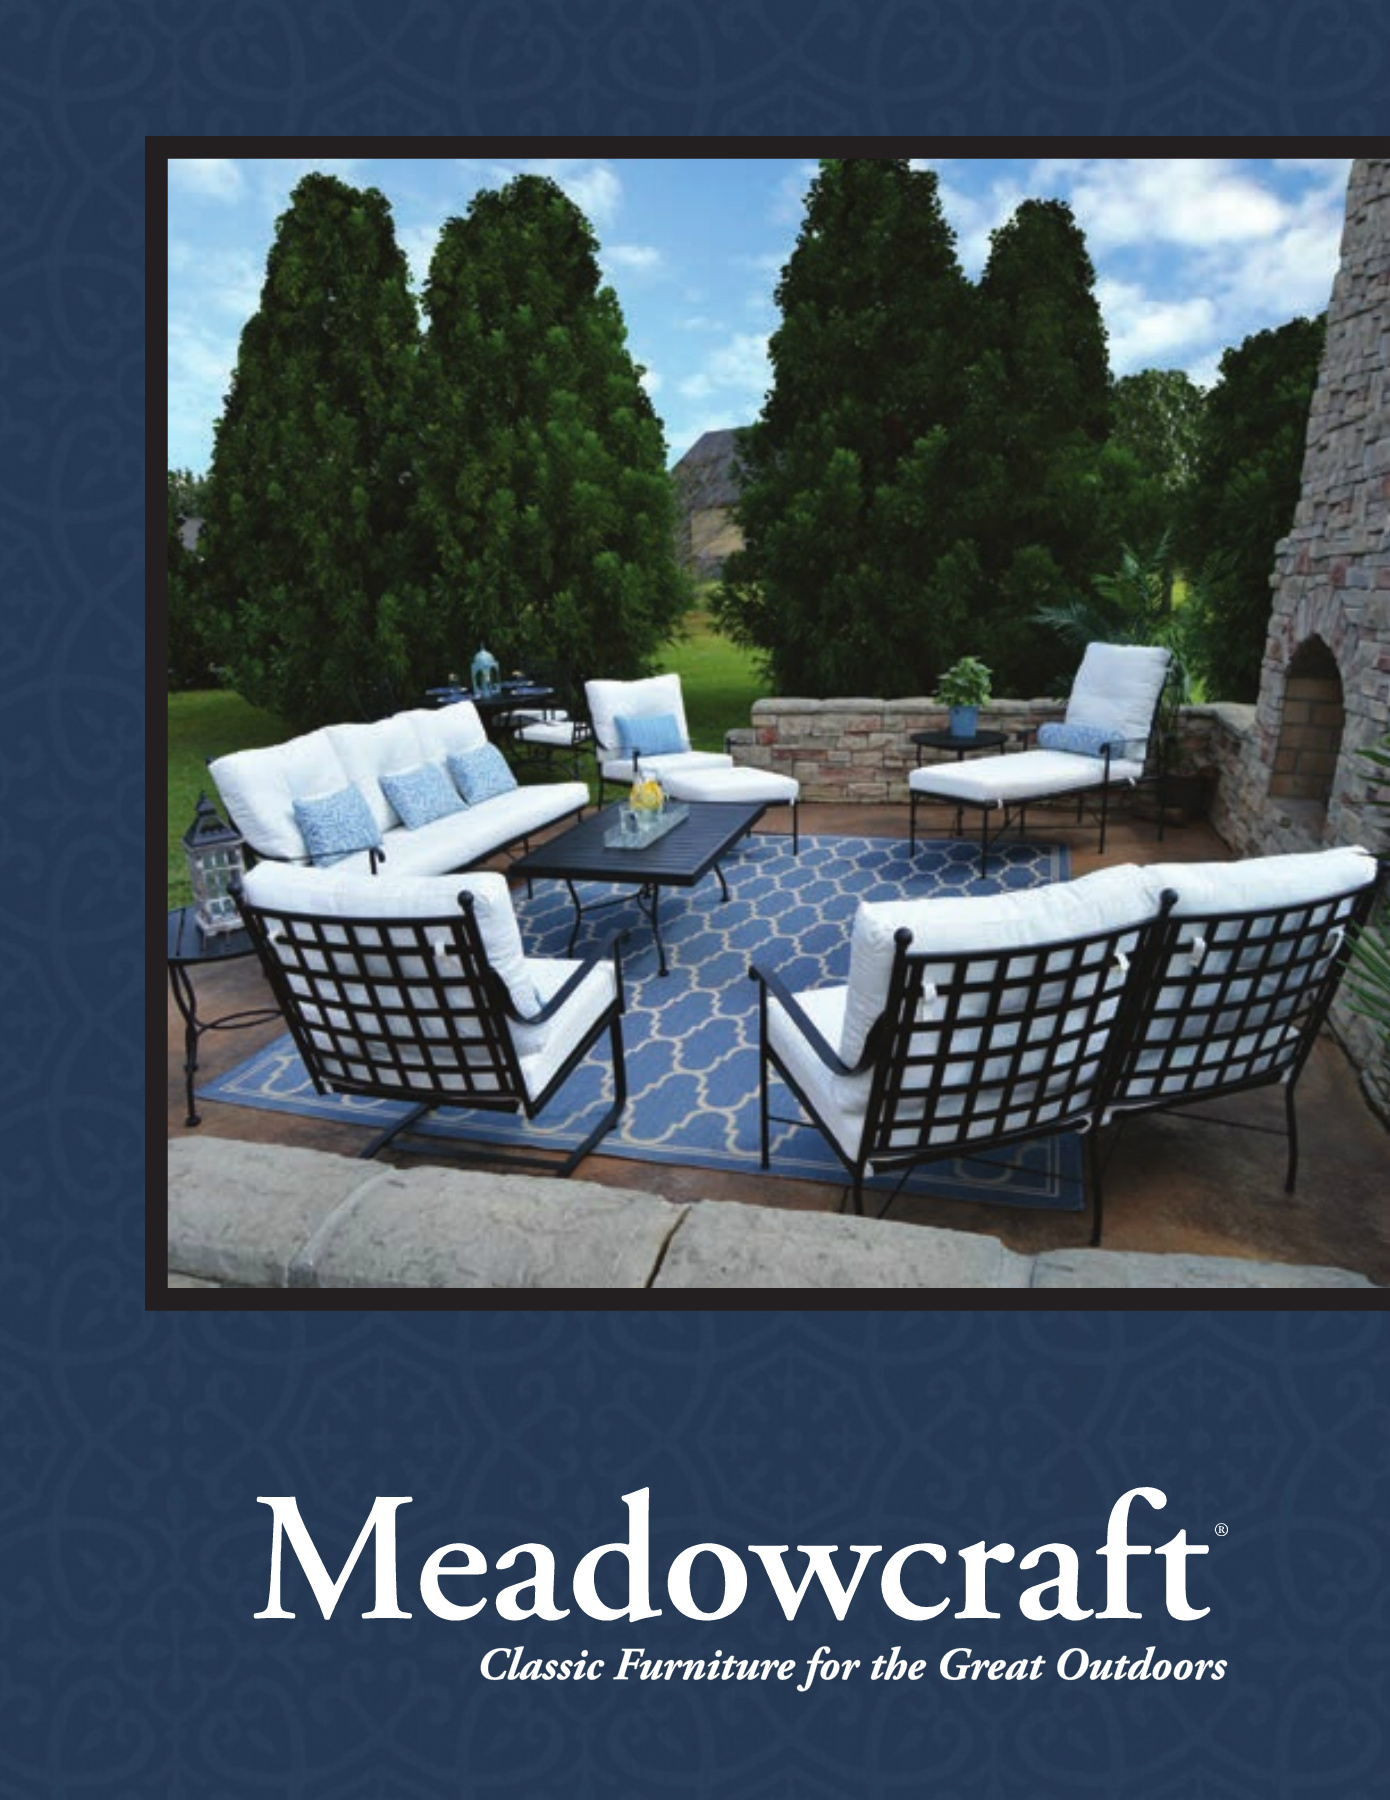 Fine 2018 Meadowcraft Speciality Catalog Pages 1 48 Text Pdpeps Interior Chair Design Pdpepsorg